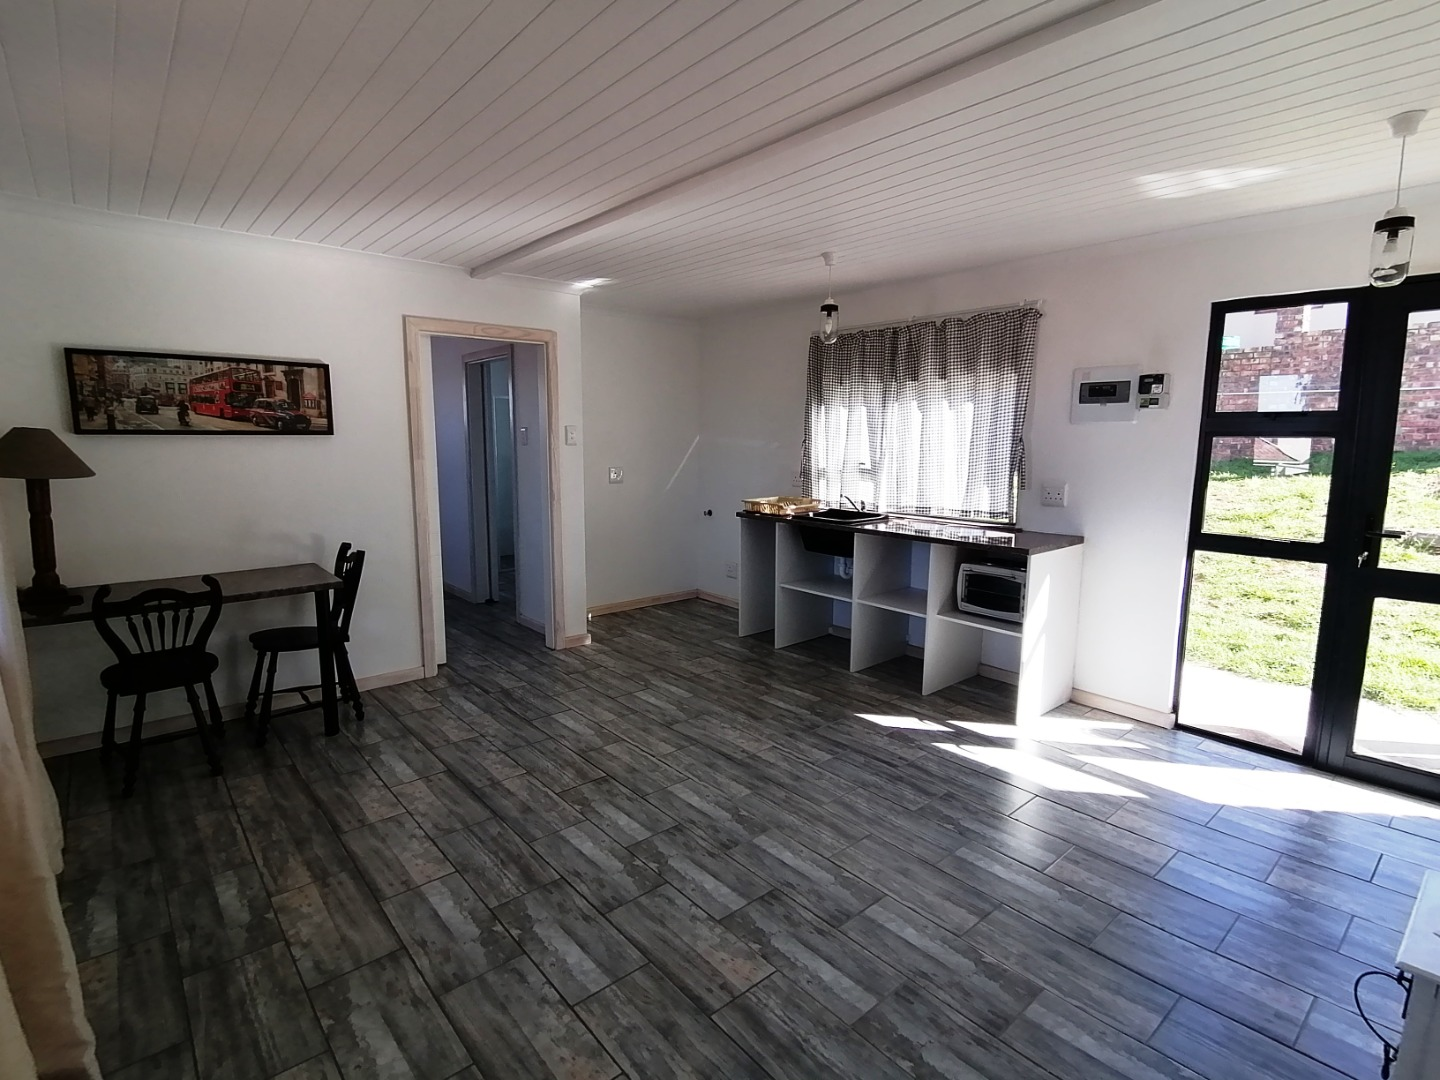 1 Bedroom Apartment / Flat To Rent in West Bank